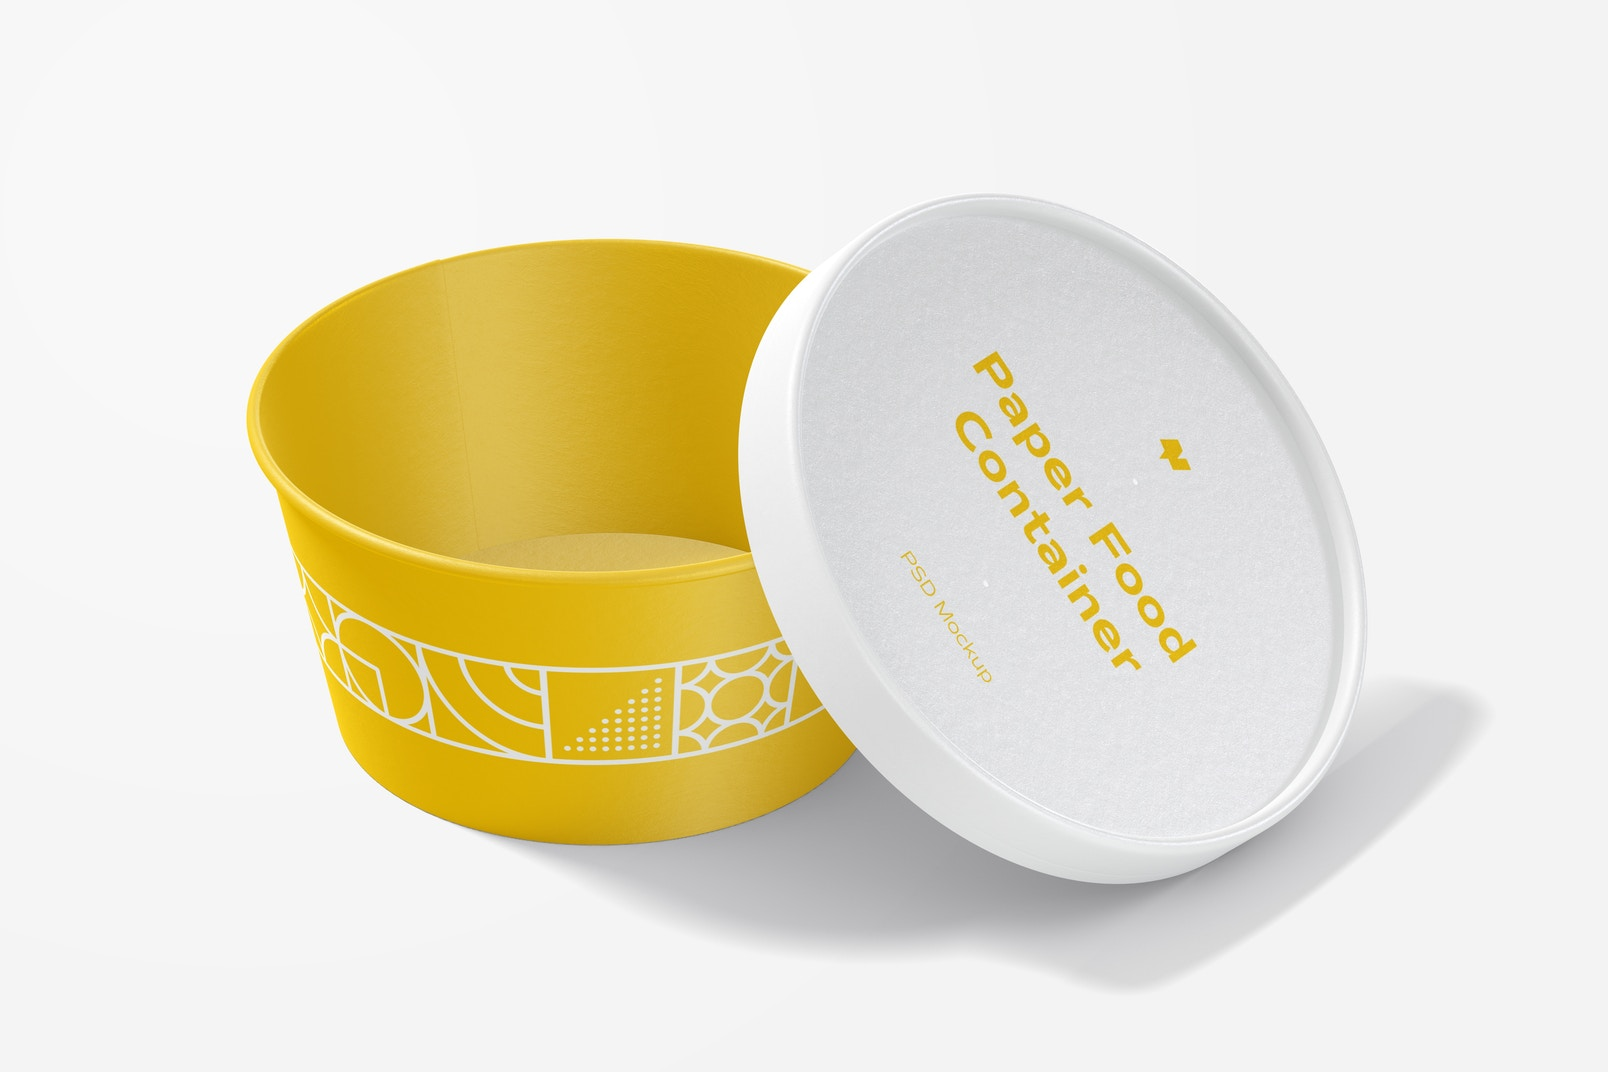 Round Paper Food Delivery Container Mockup, Opened